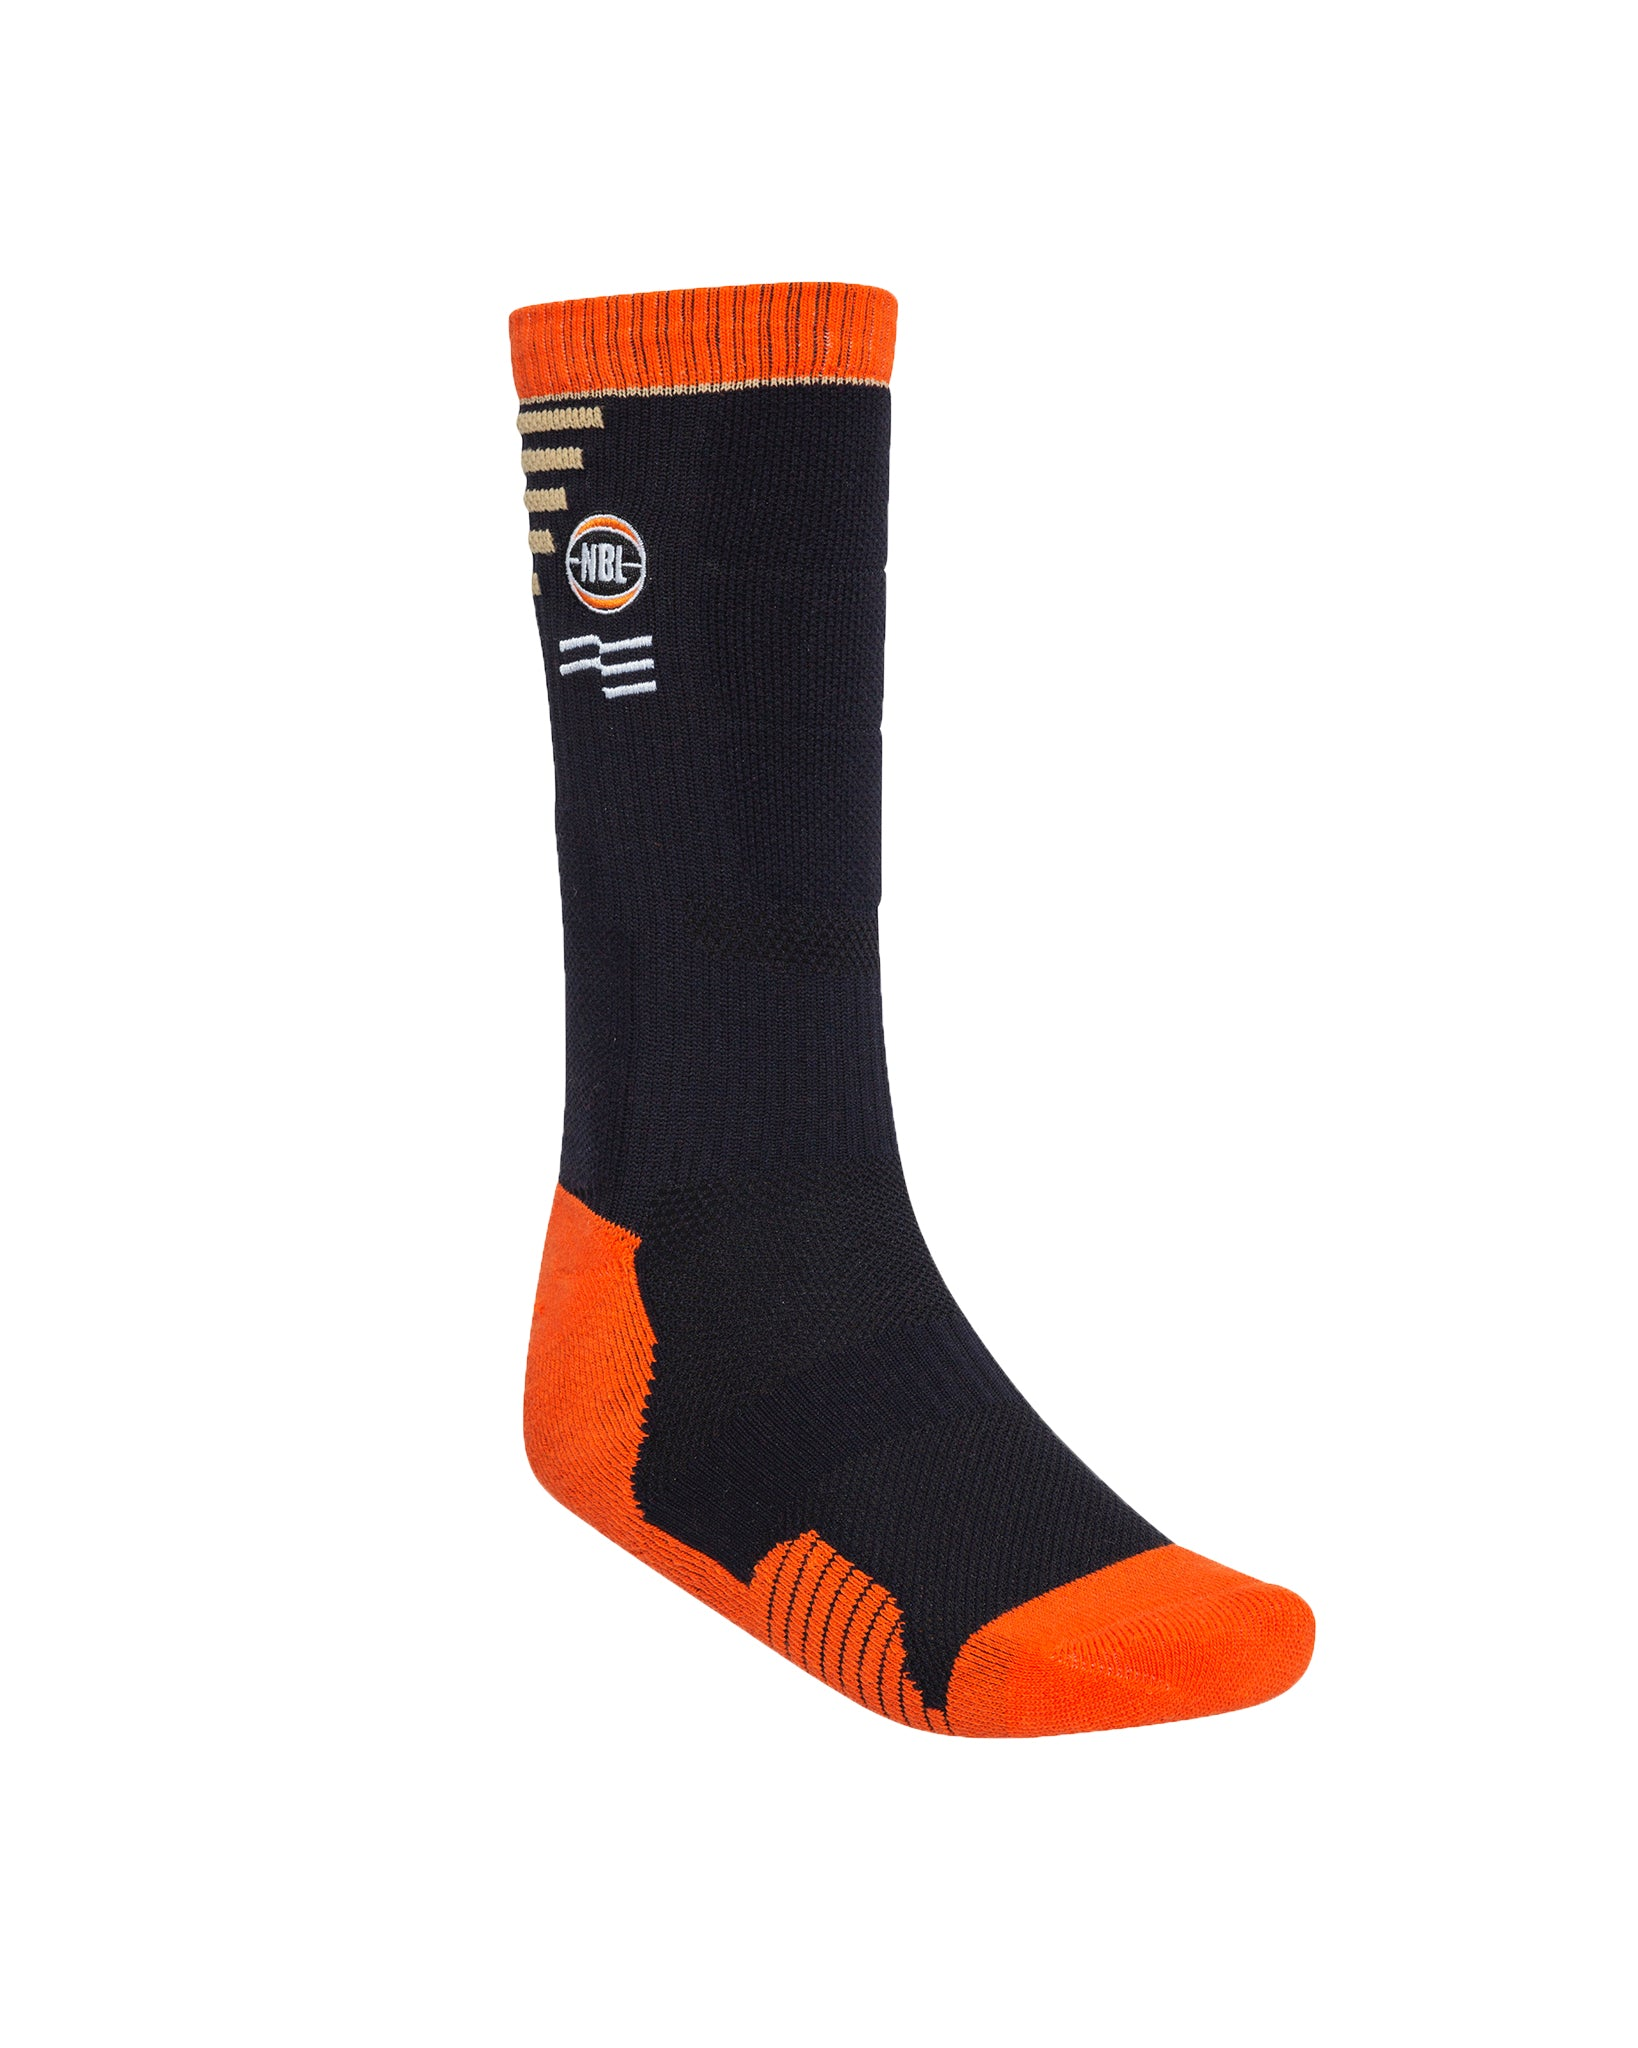 Cairns Taipans 19/20 Official NBL Home Socks